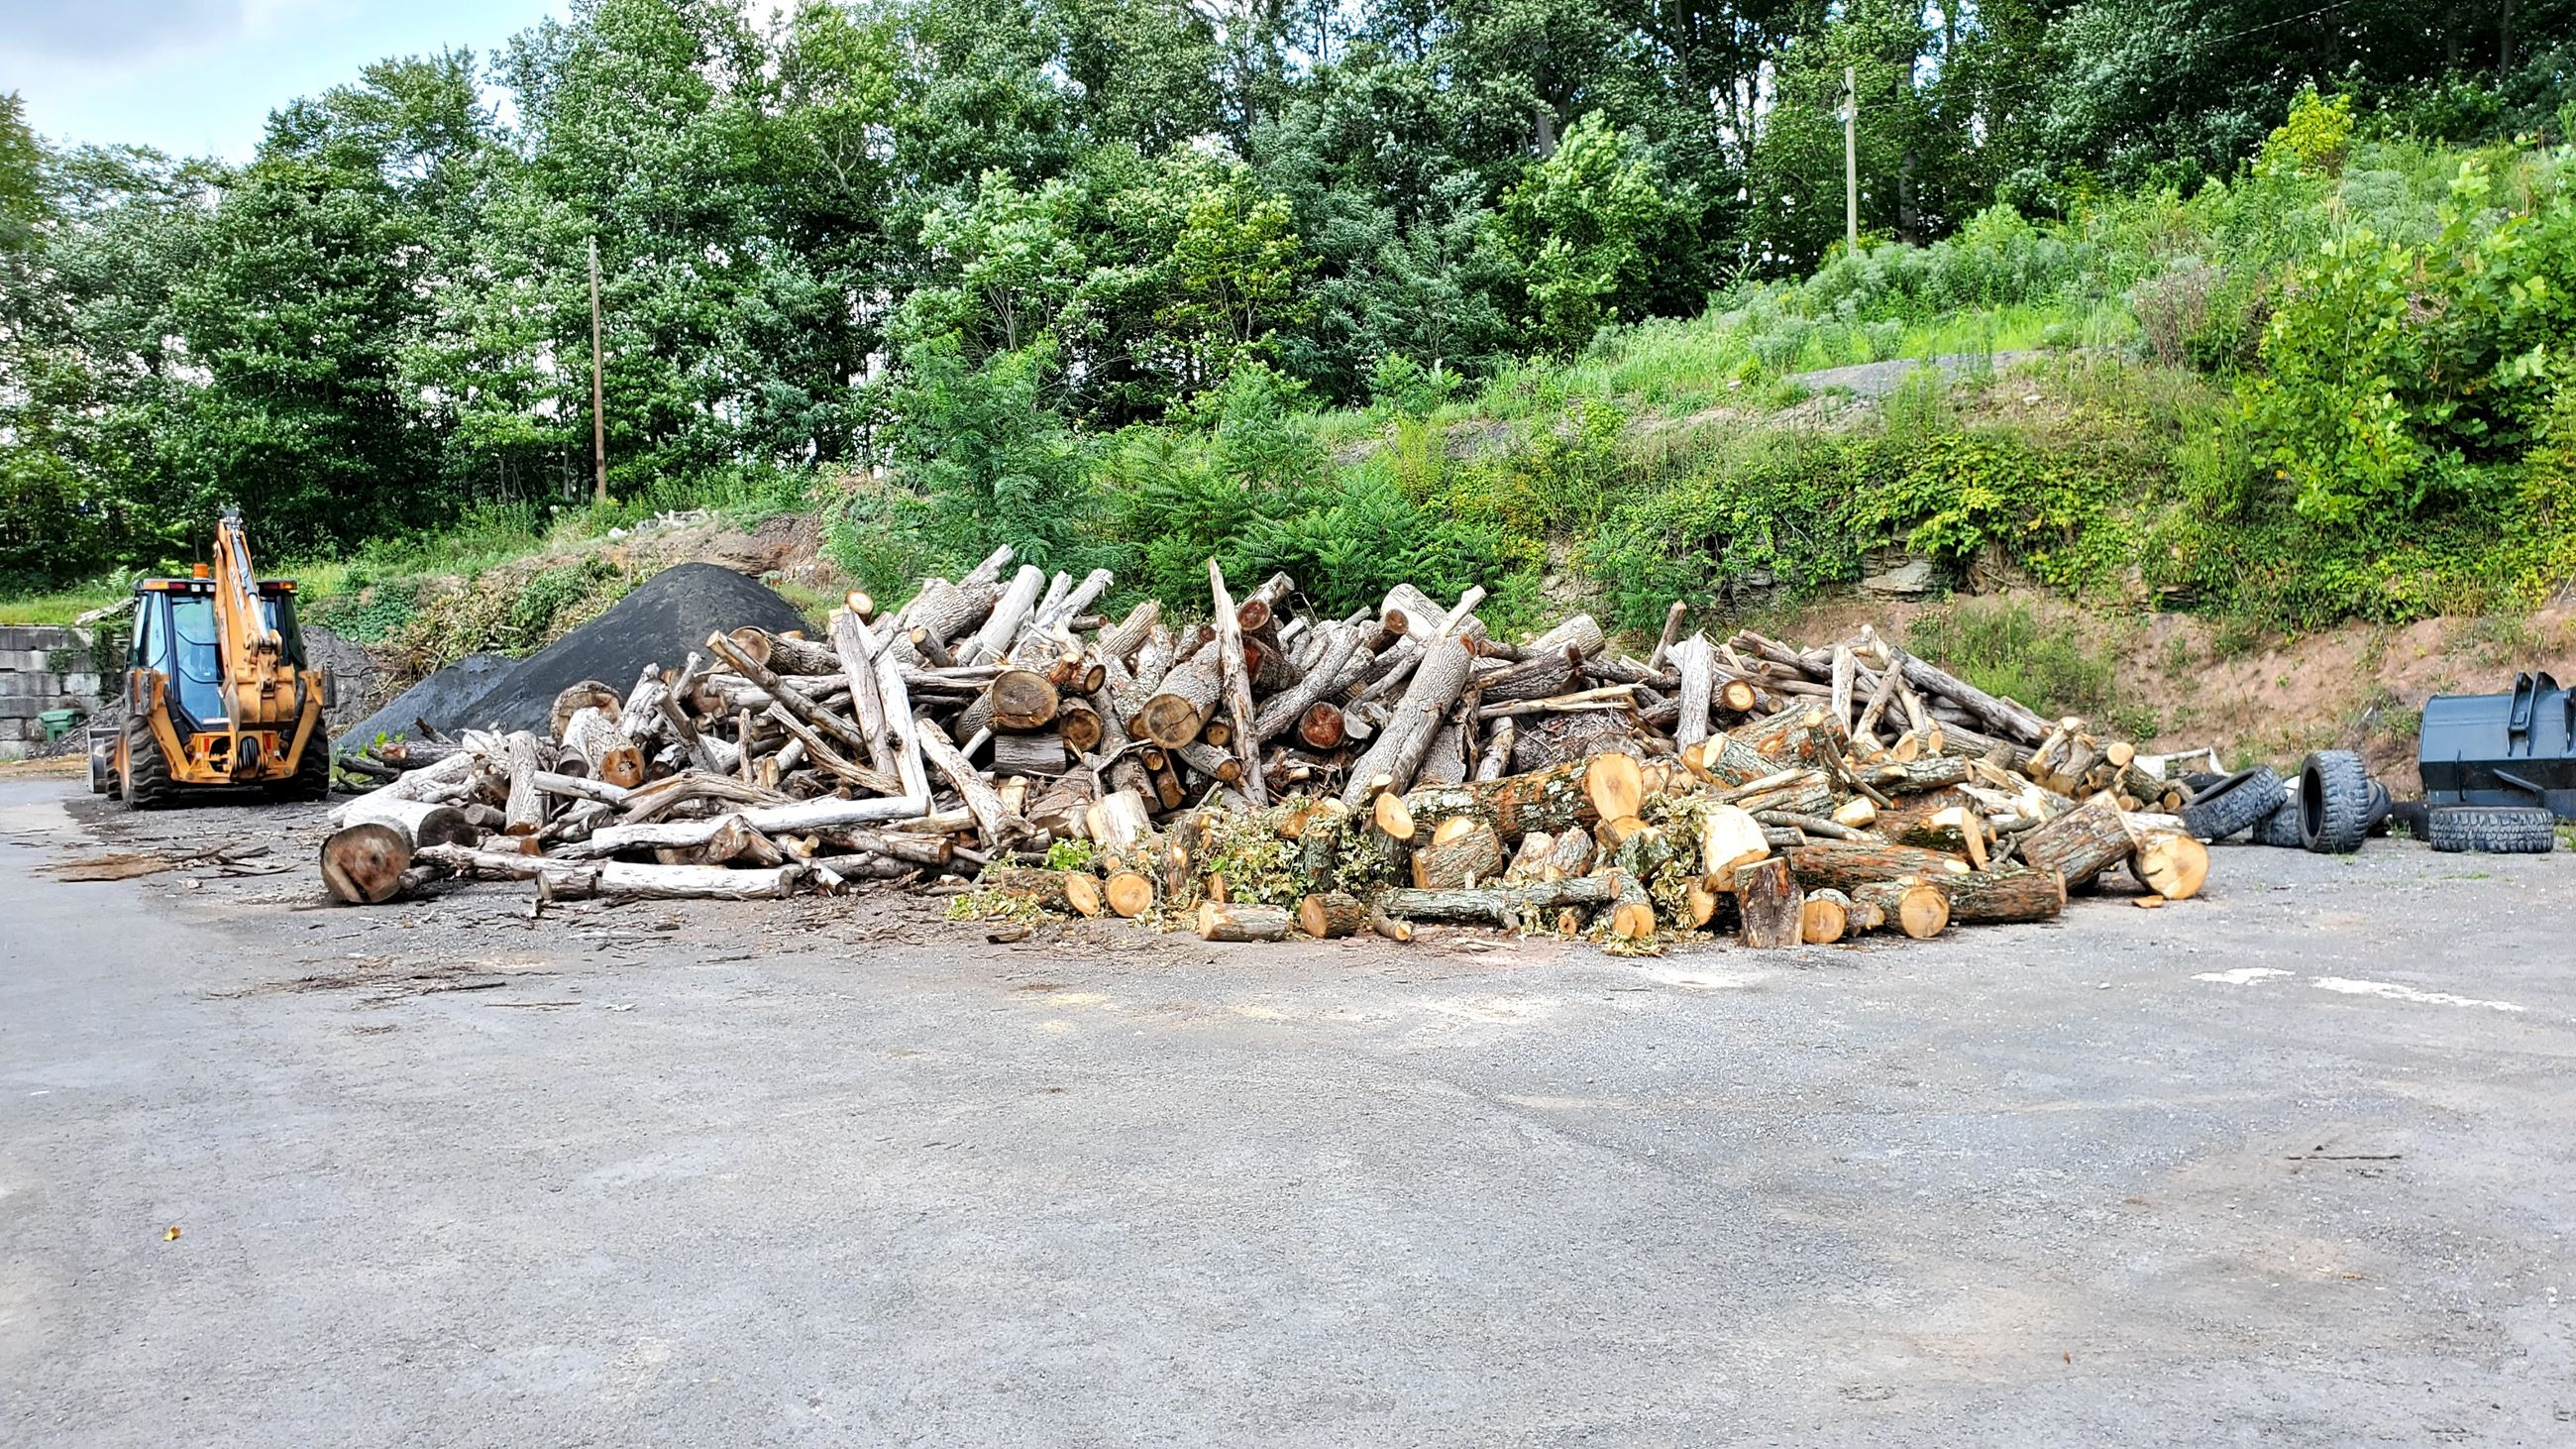 A picture of firewood that is available at the City Garage during the city's release of materials